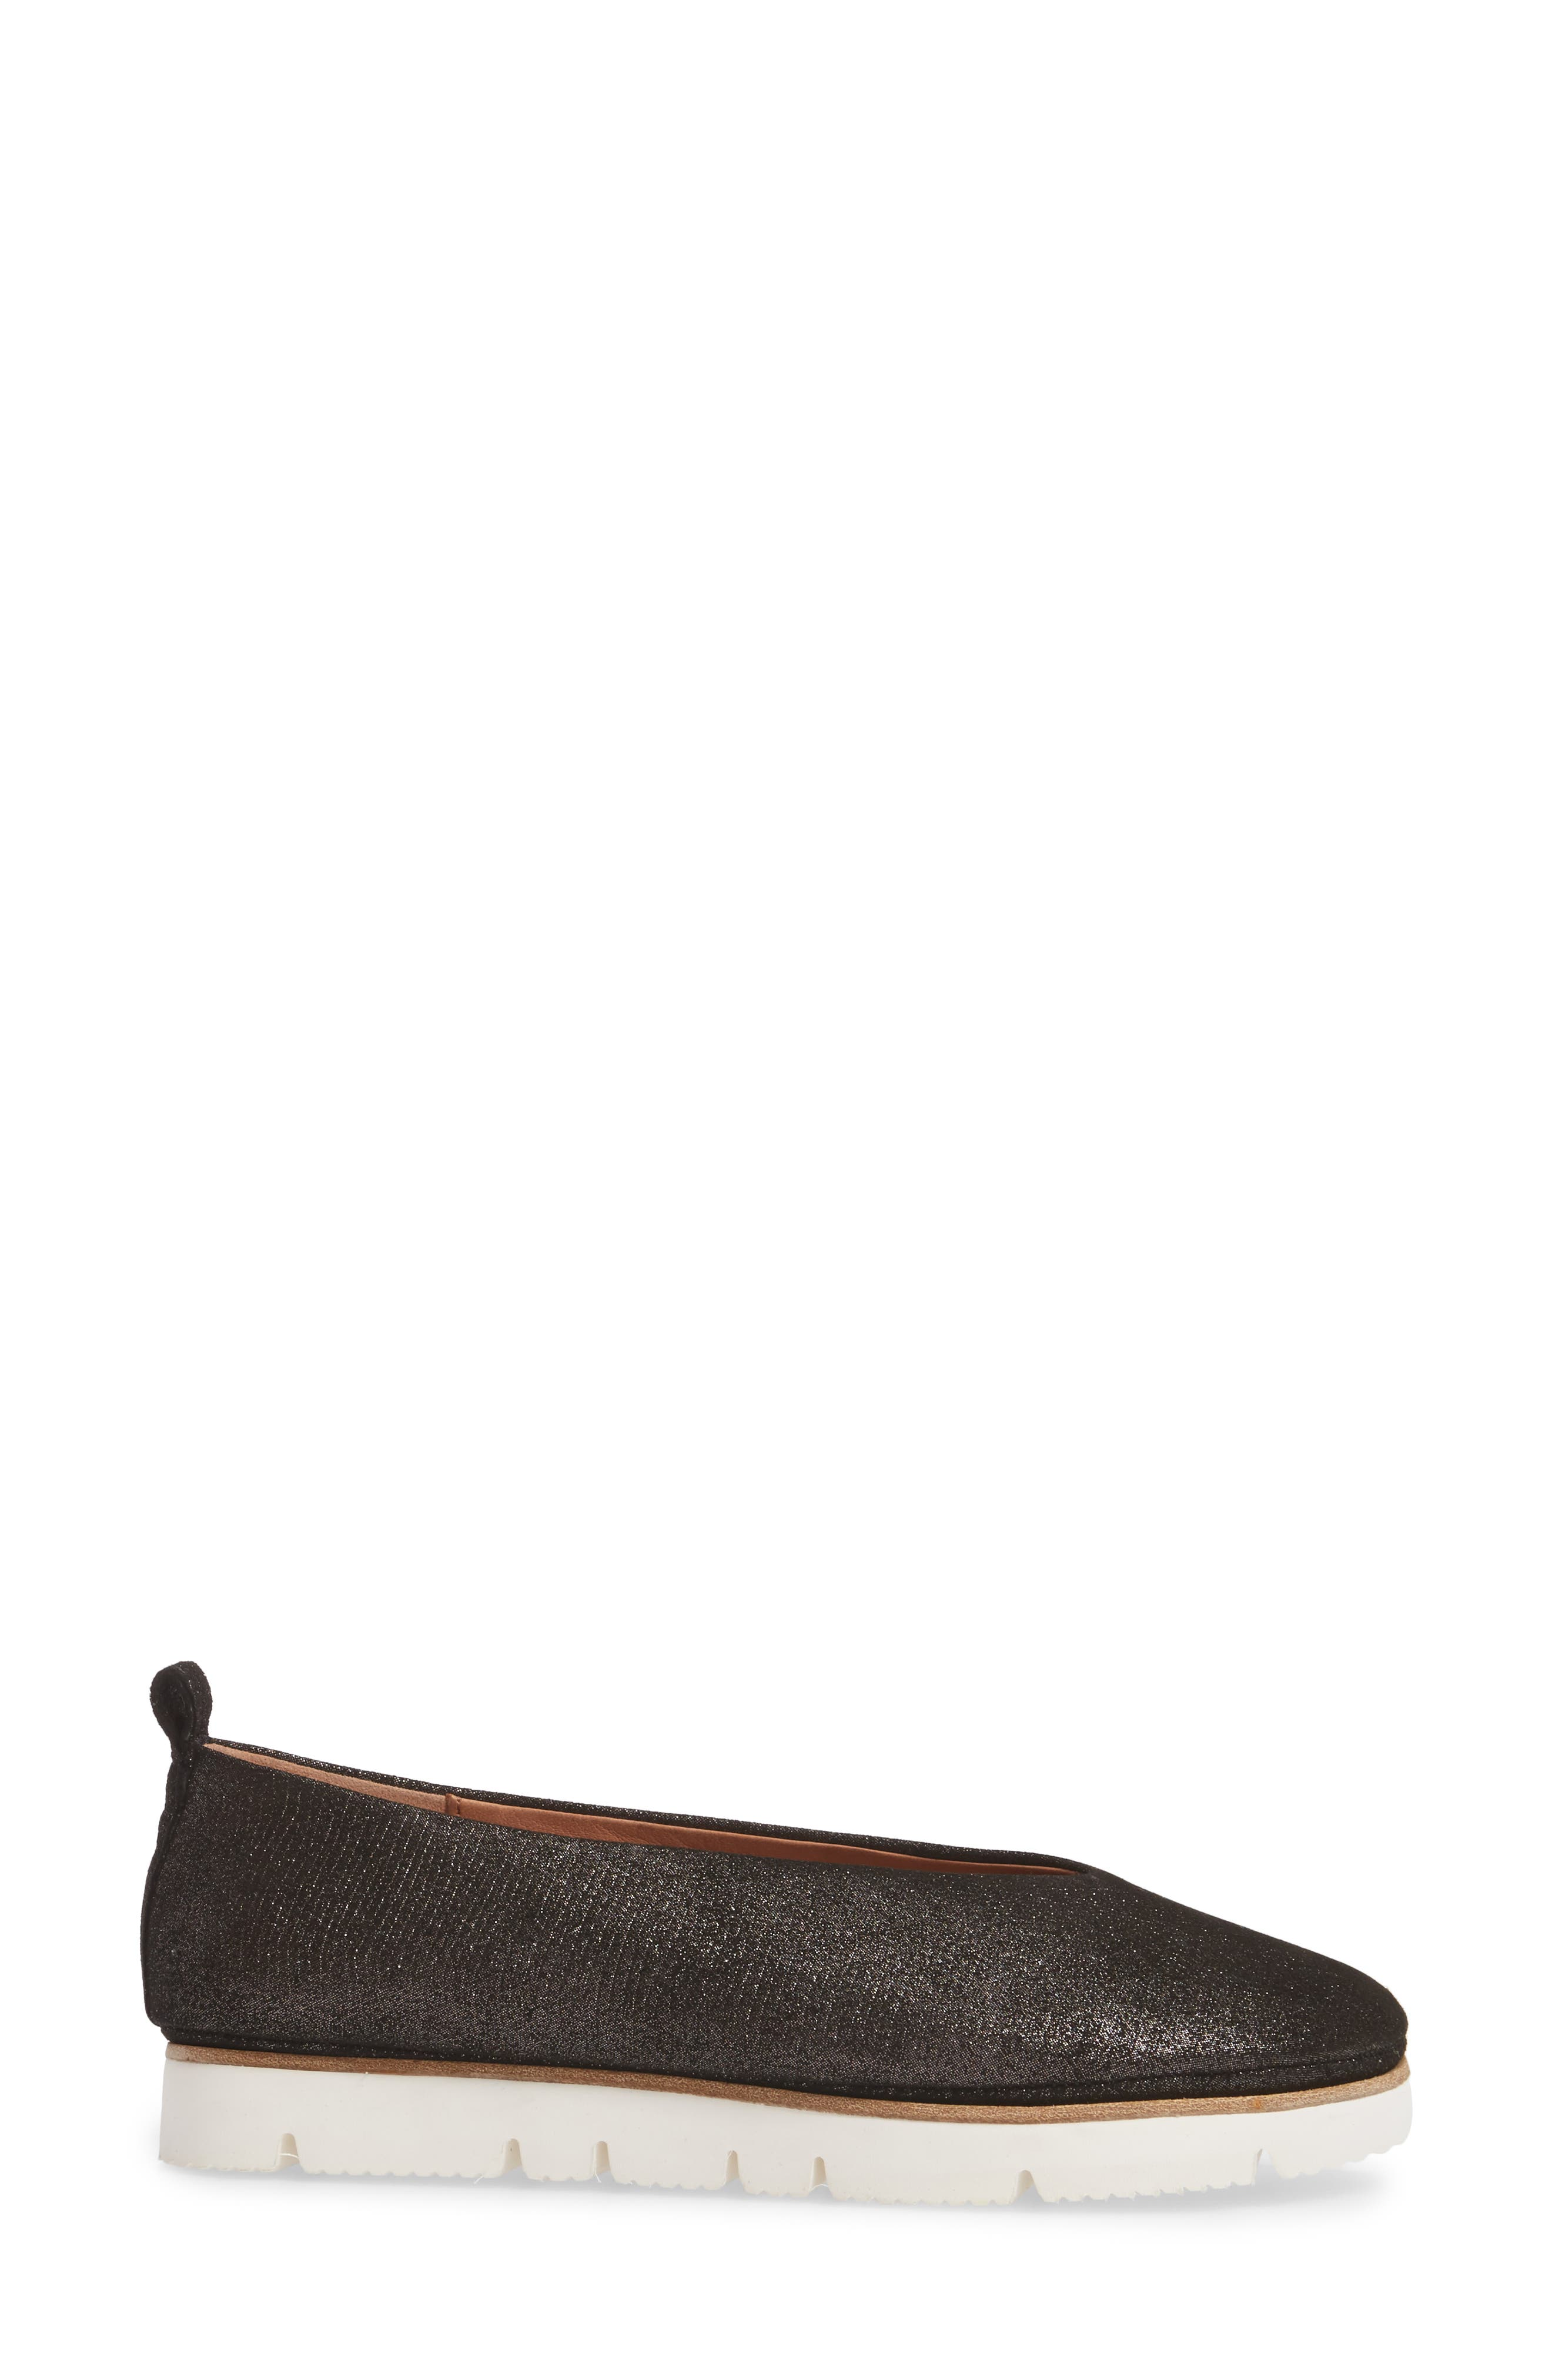 GENTLE SOULS BY KENNETH COLE, Demi Flat, Alternate thumbnail 3, color, BLACK EMBOSSED LEATHER